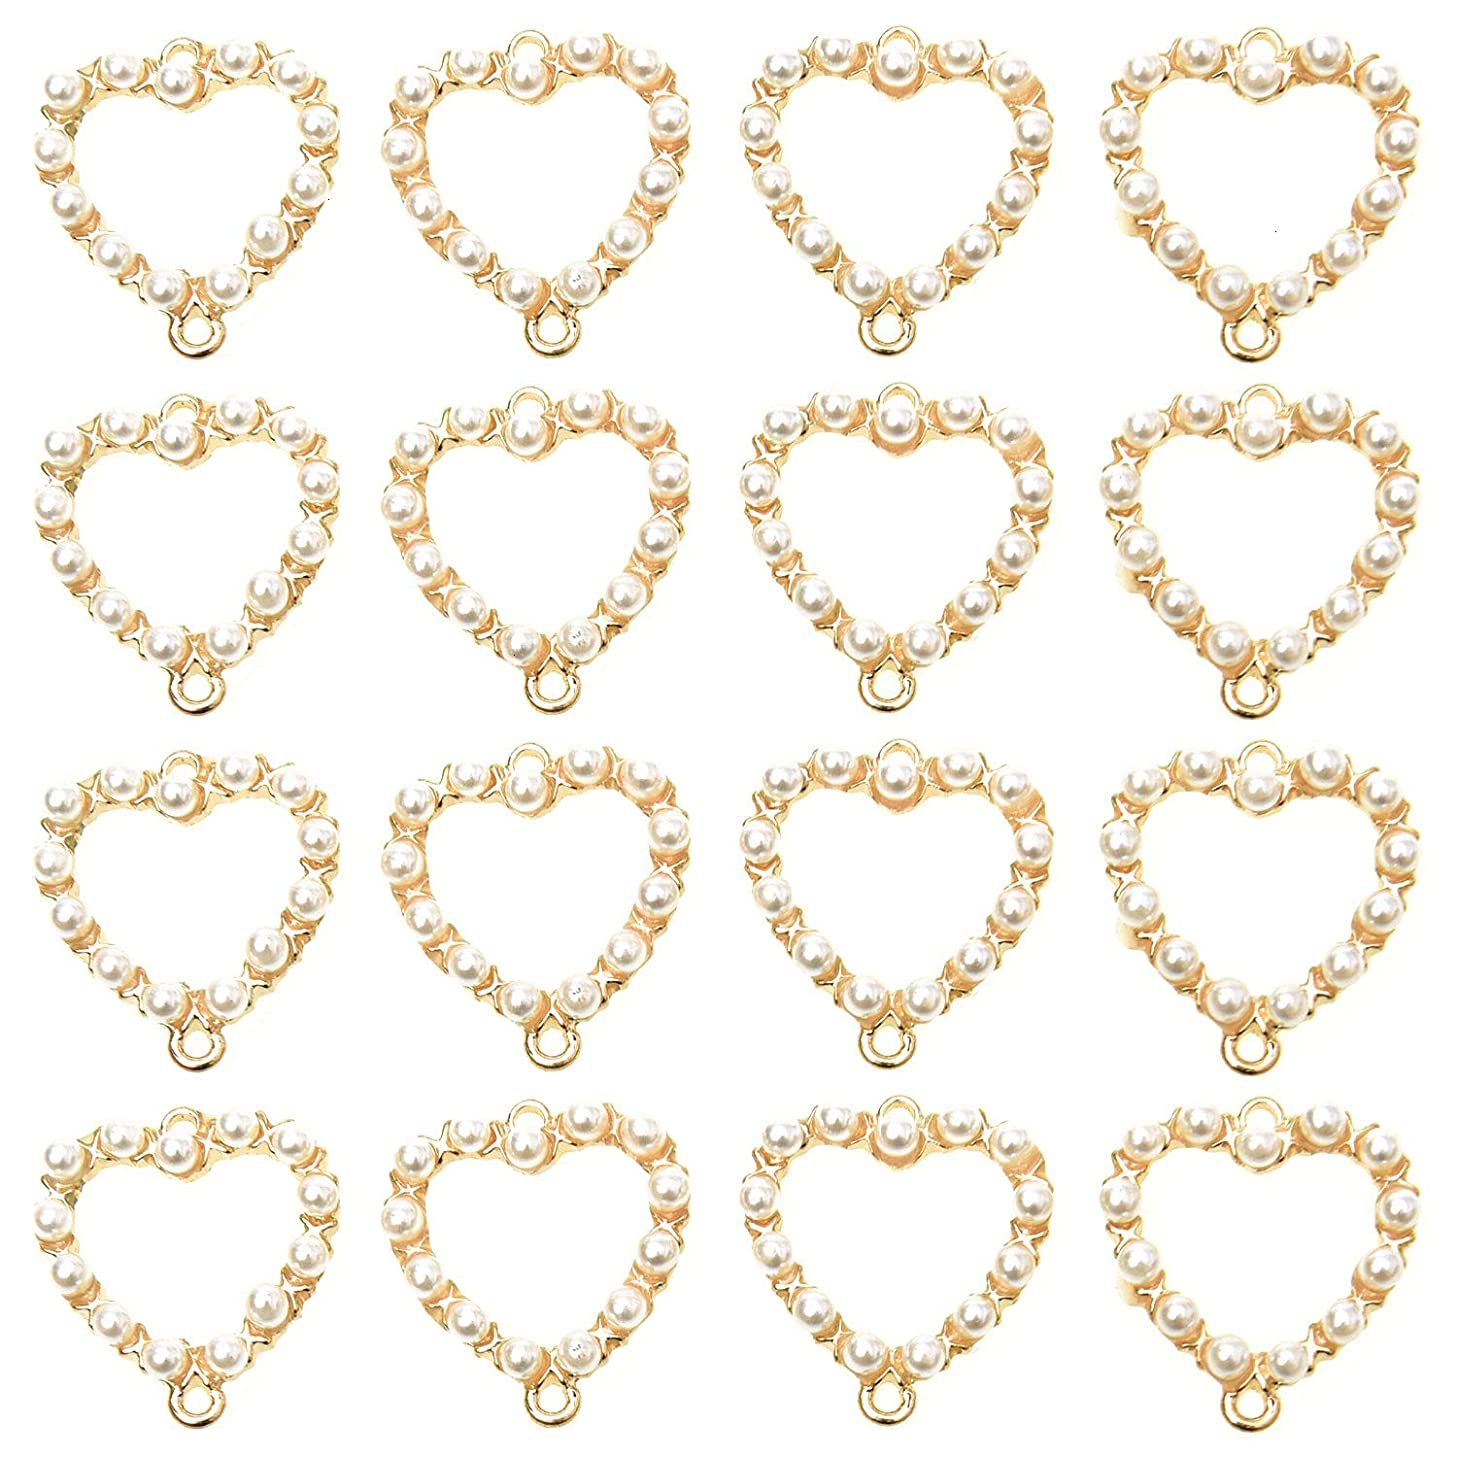 Monrocco 20PCS 25MM Gold Heart Shape Charm Pendant DIY Jewelry Making for Necklaces Bracelets Earring